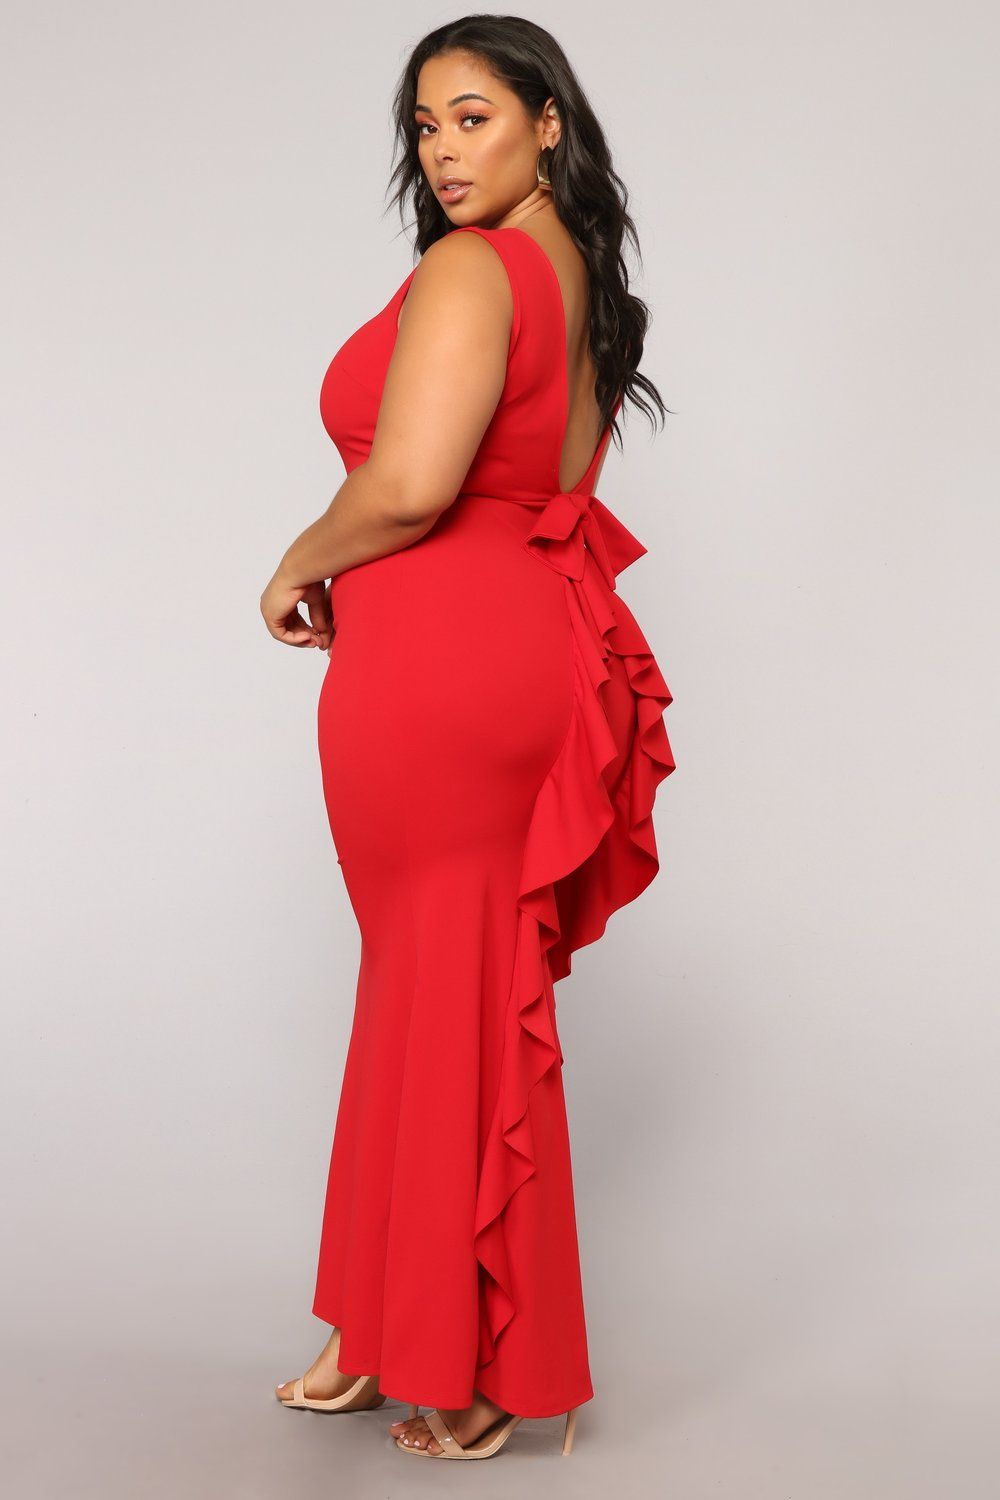 Such A Lady Ruffle Dress Red Red dress, Plus size